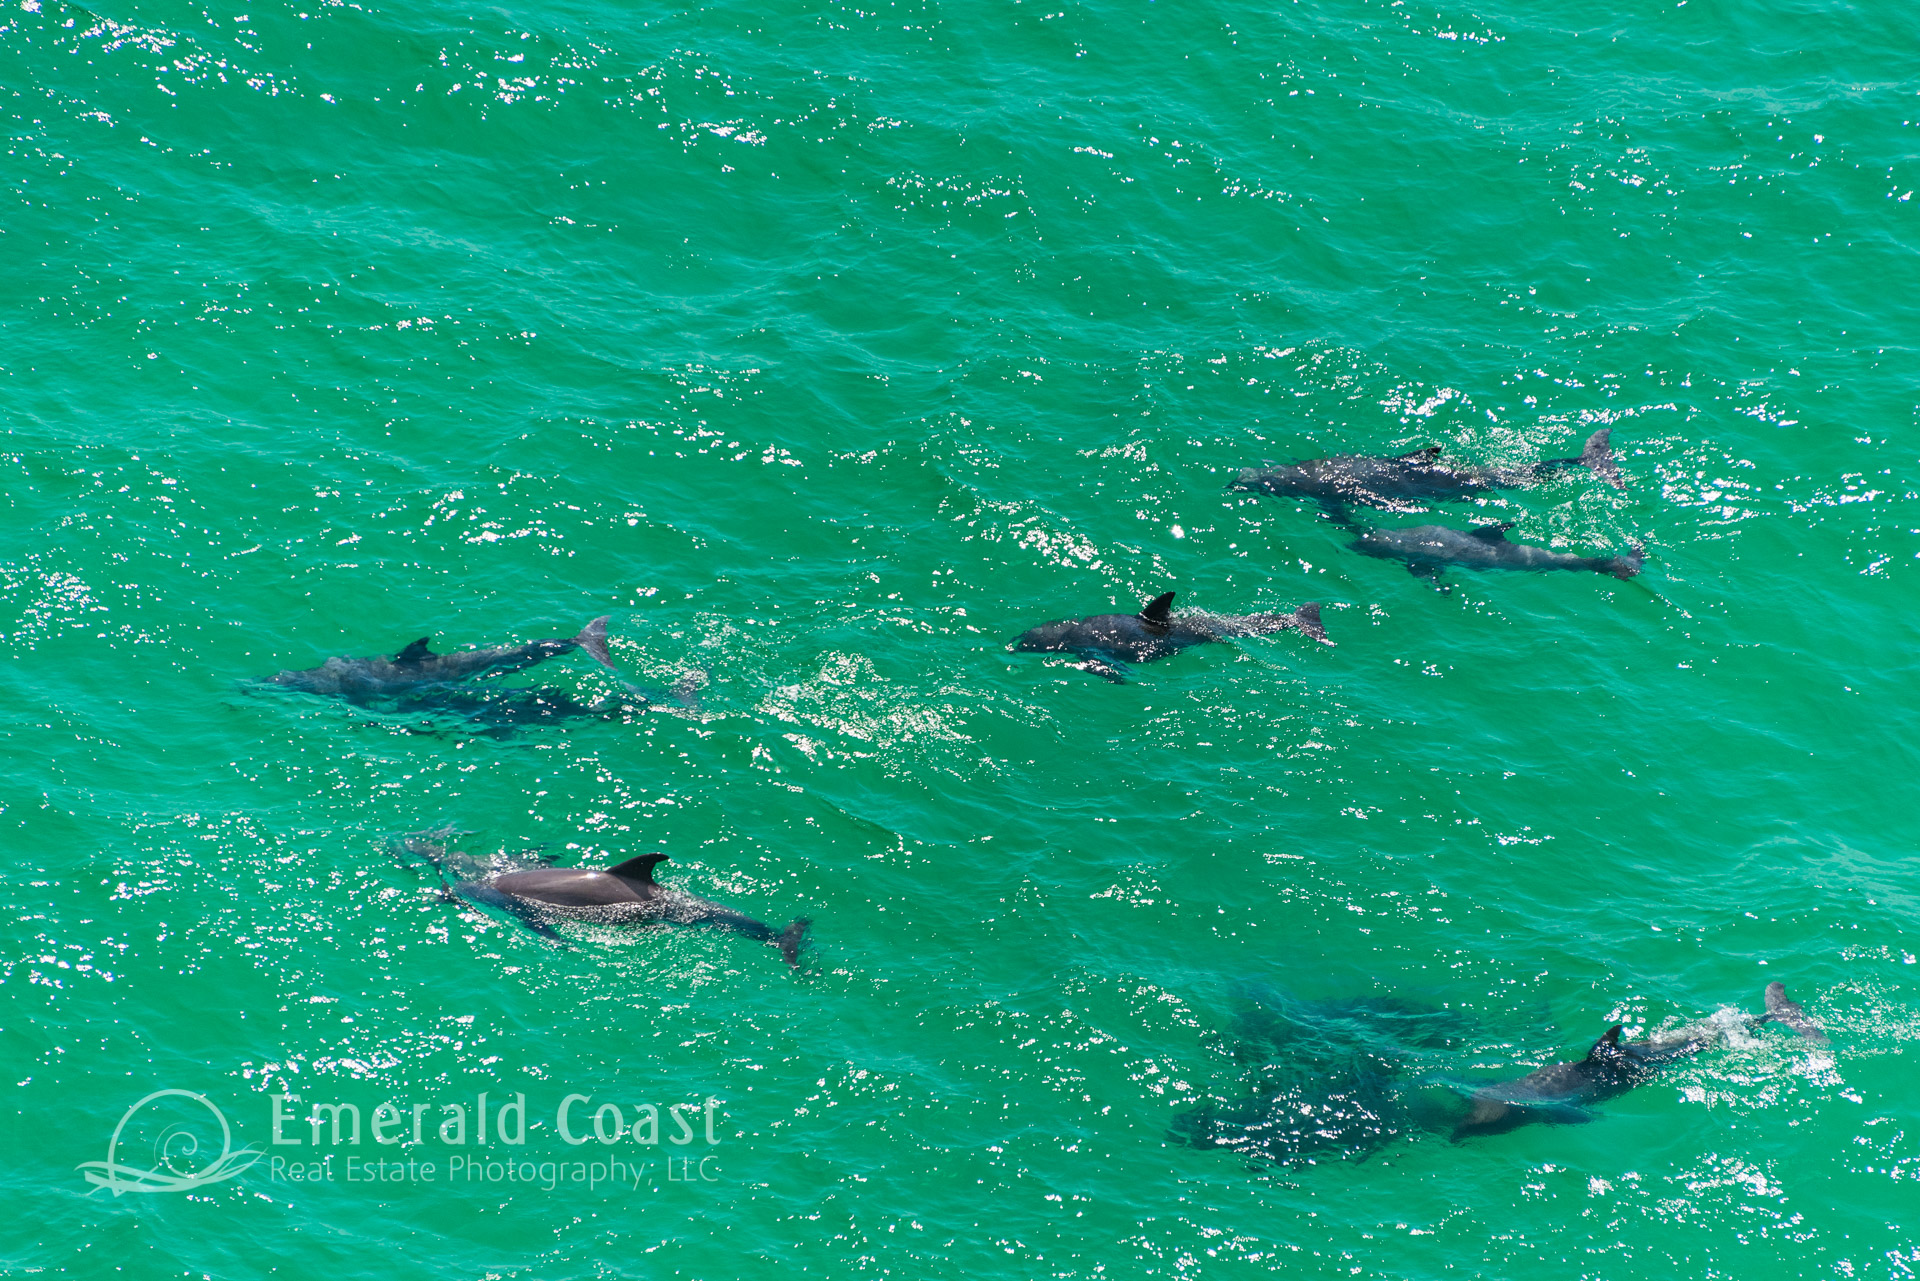 Pod of Dolphins in the Gulf of Mexico, Aerial Photography